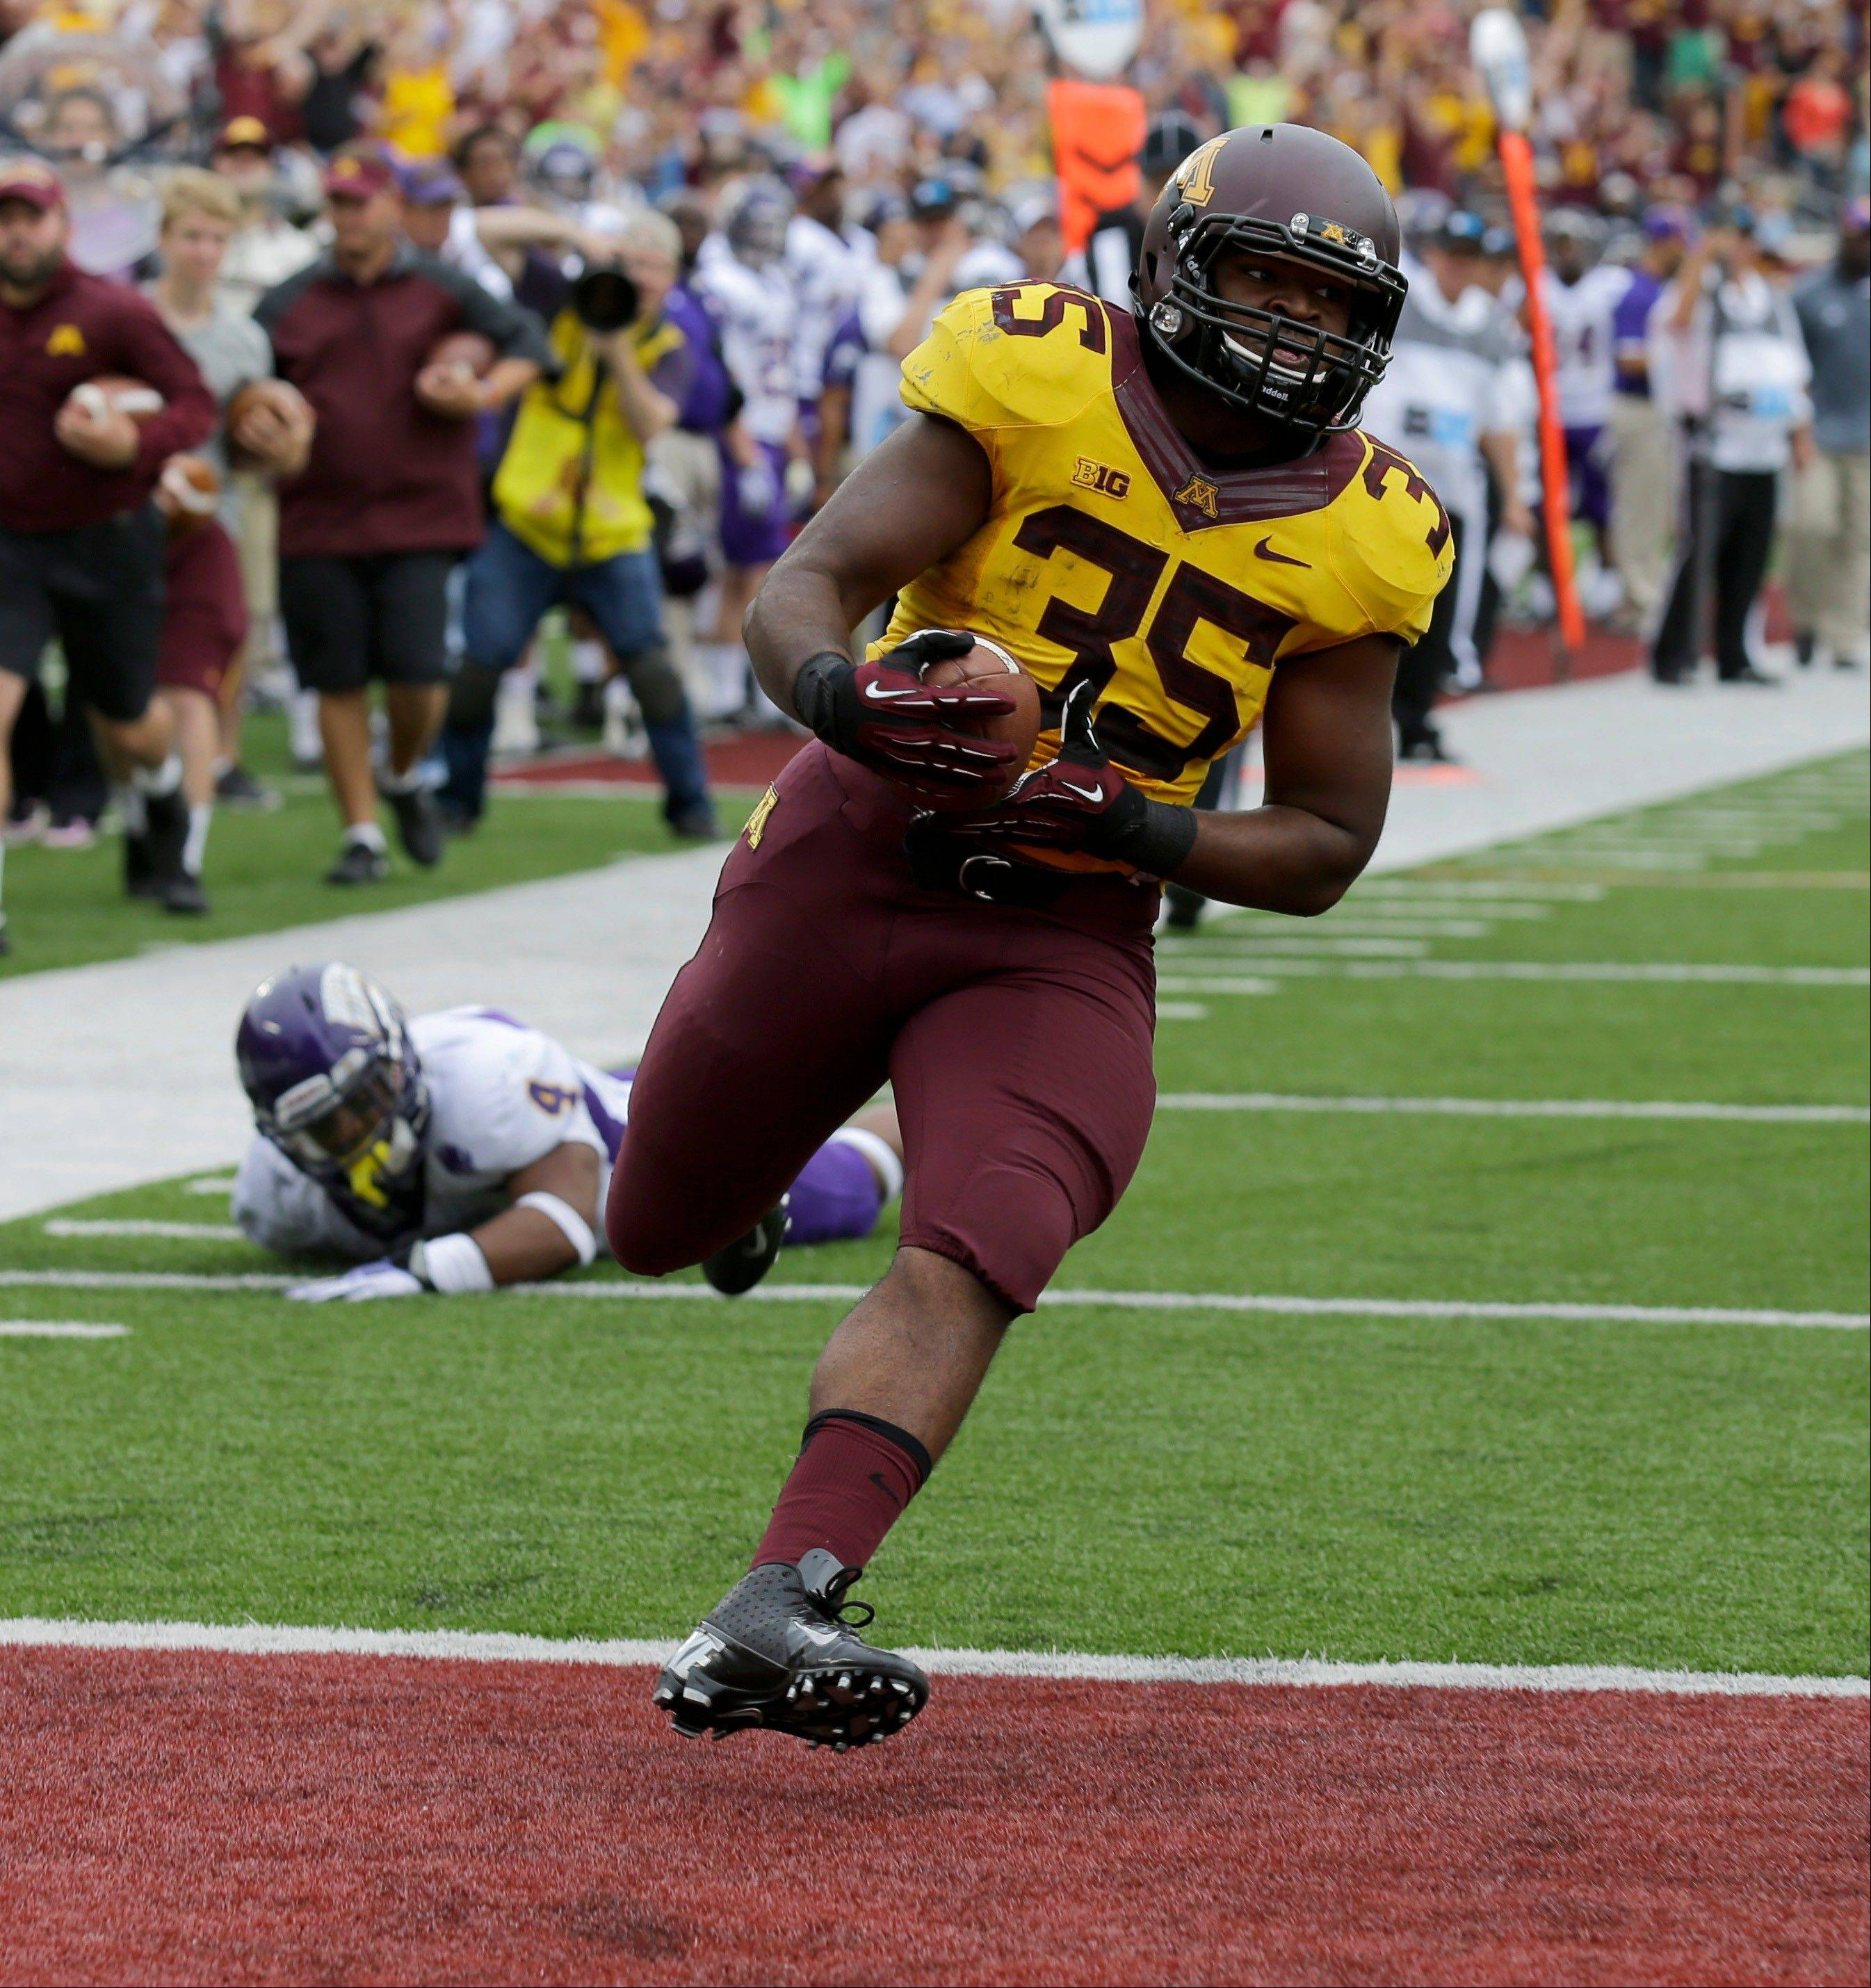 Minnesota will be all business against San Jose St.